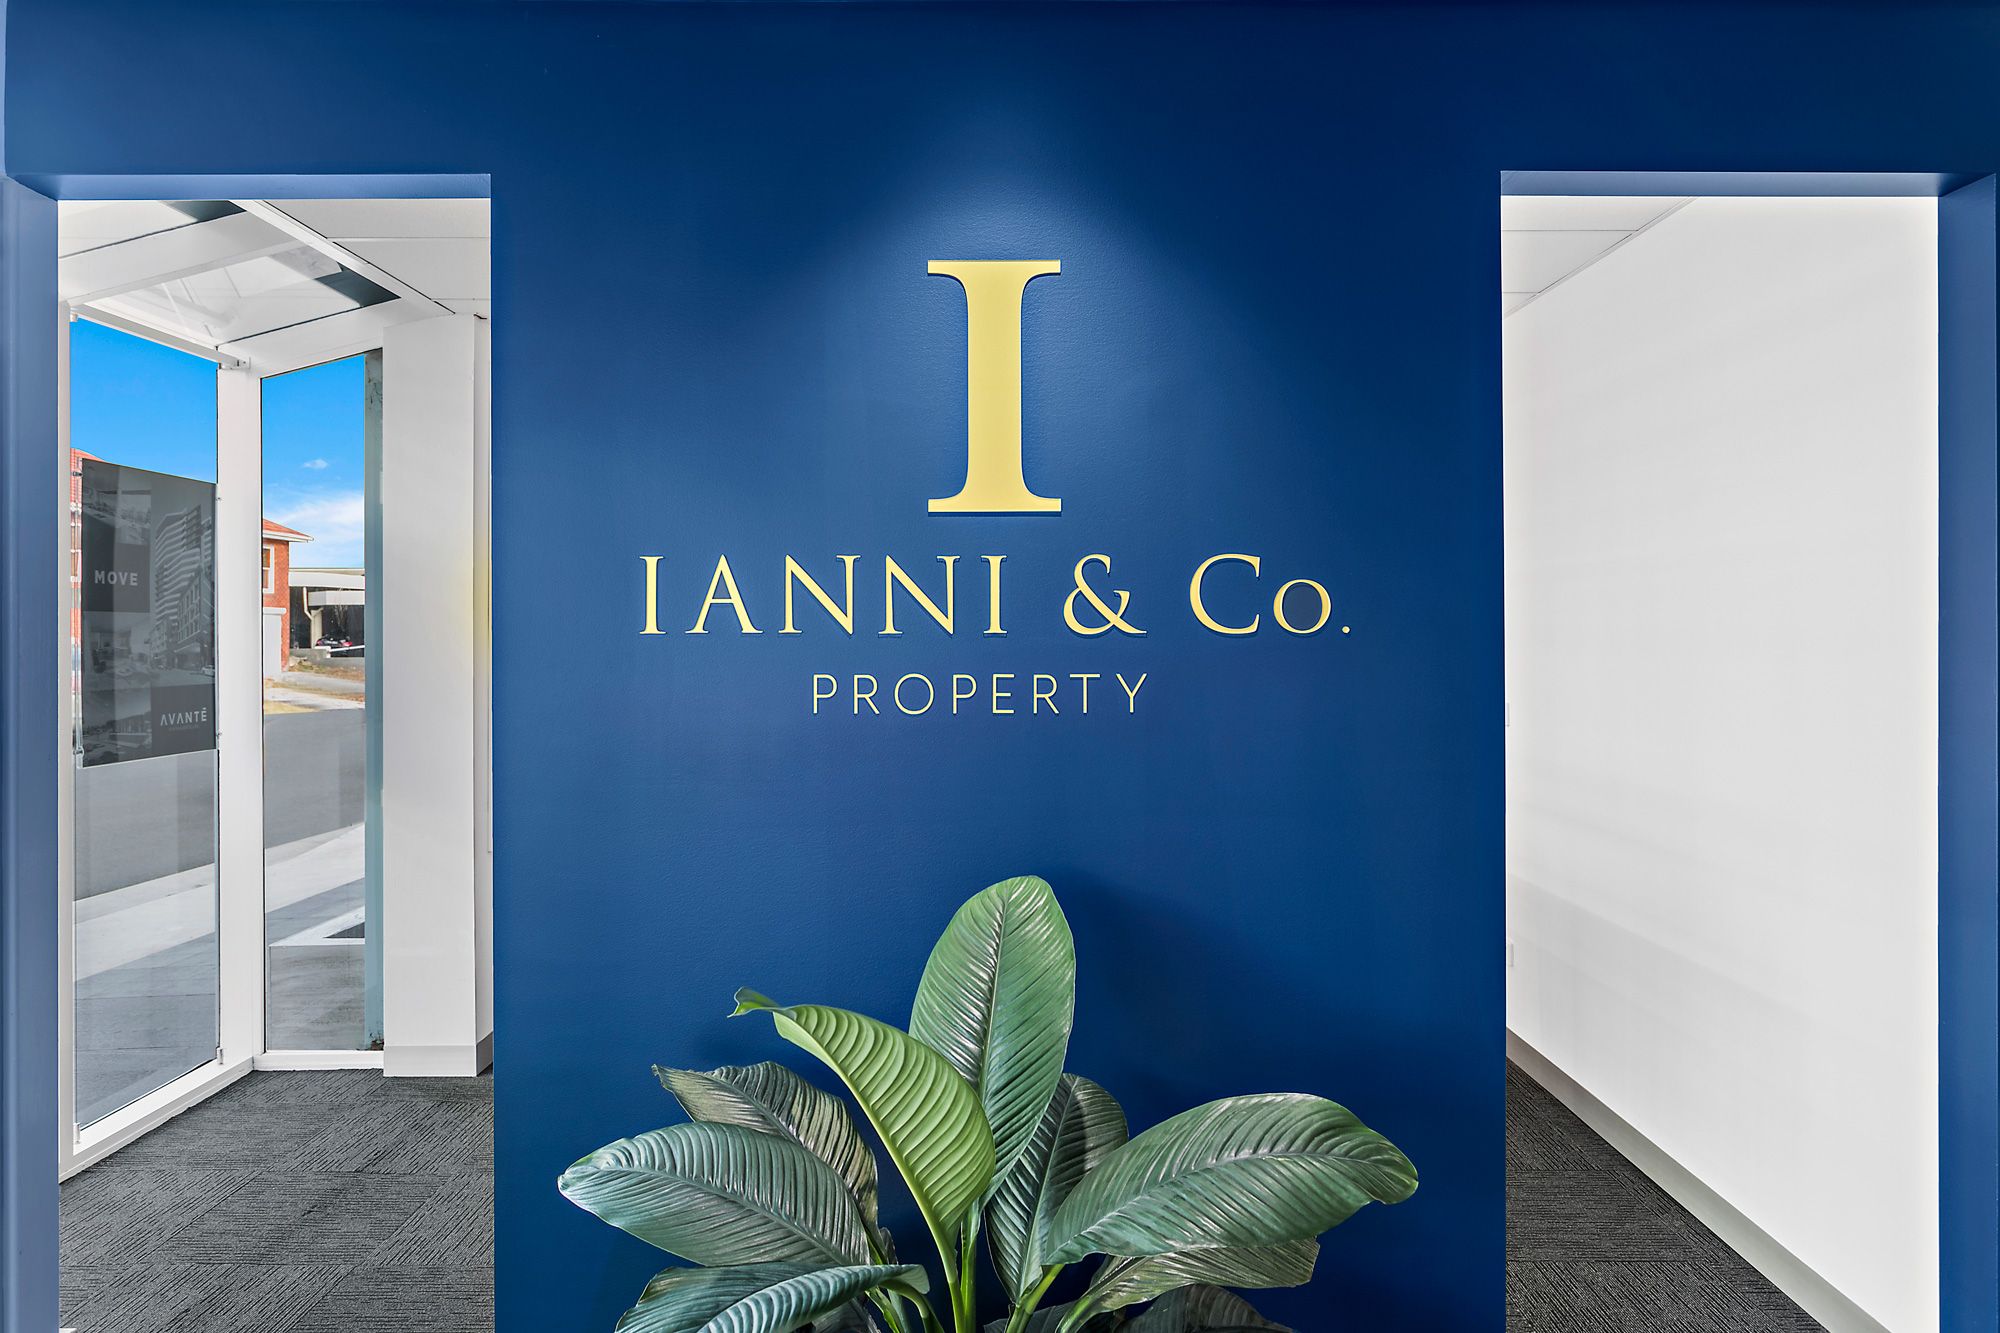 Ianni & Co. Property, Wollongong. Signage by Visual Energy